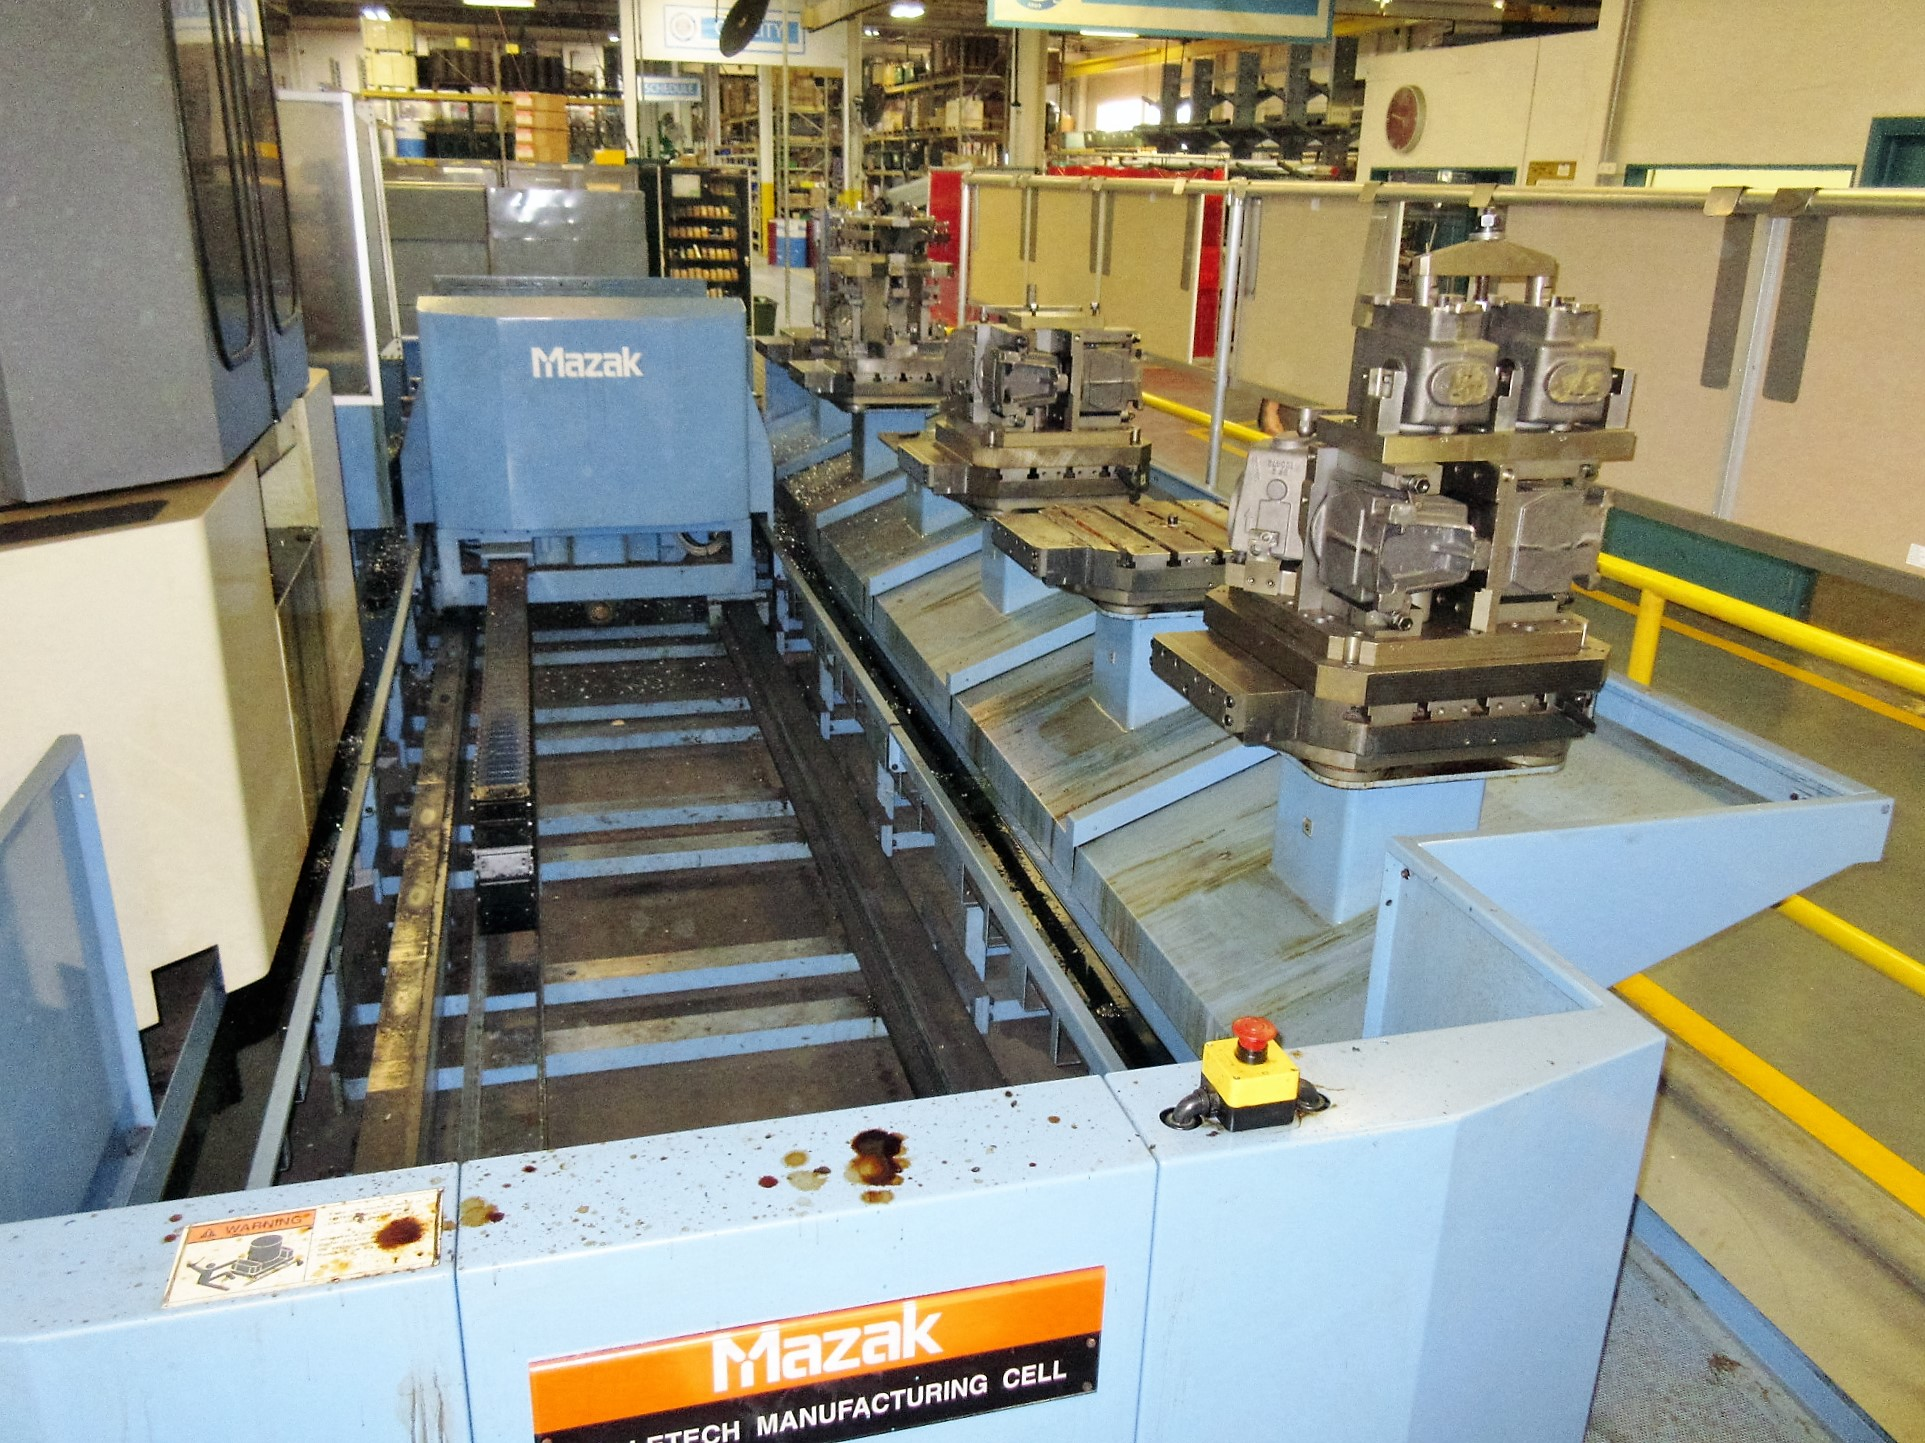 Mazak FH-6000 CNC Horizontal Machining Center With Palletech System - Image 6 of 21